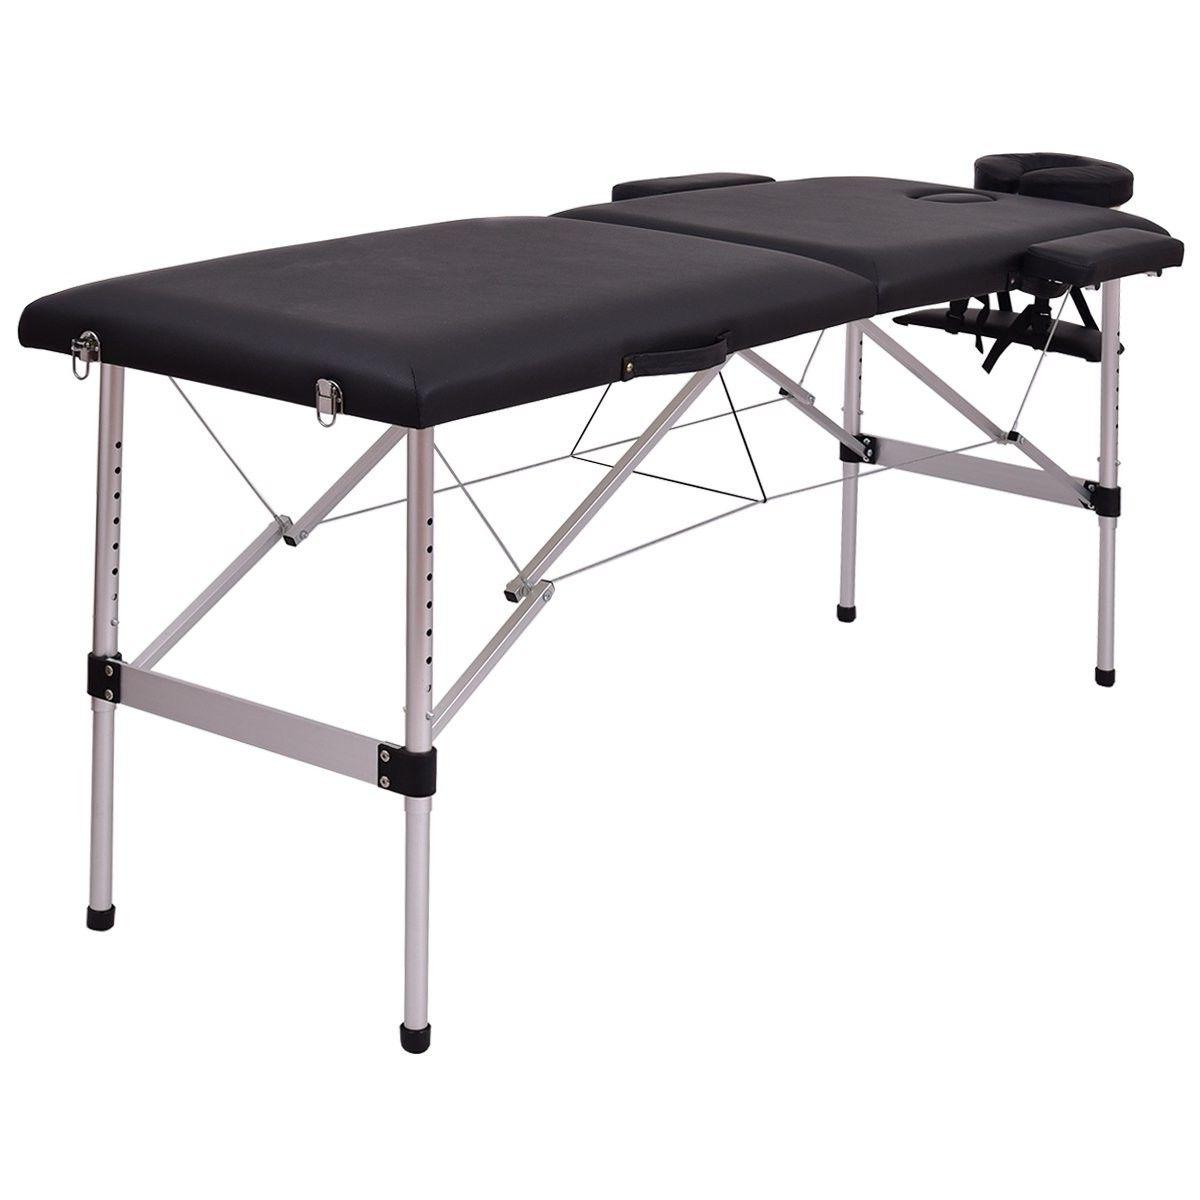 72 l 2 section portable massage table